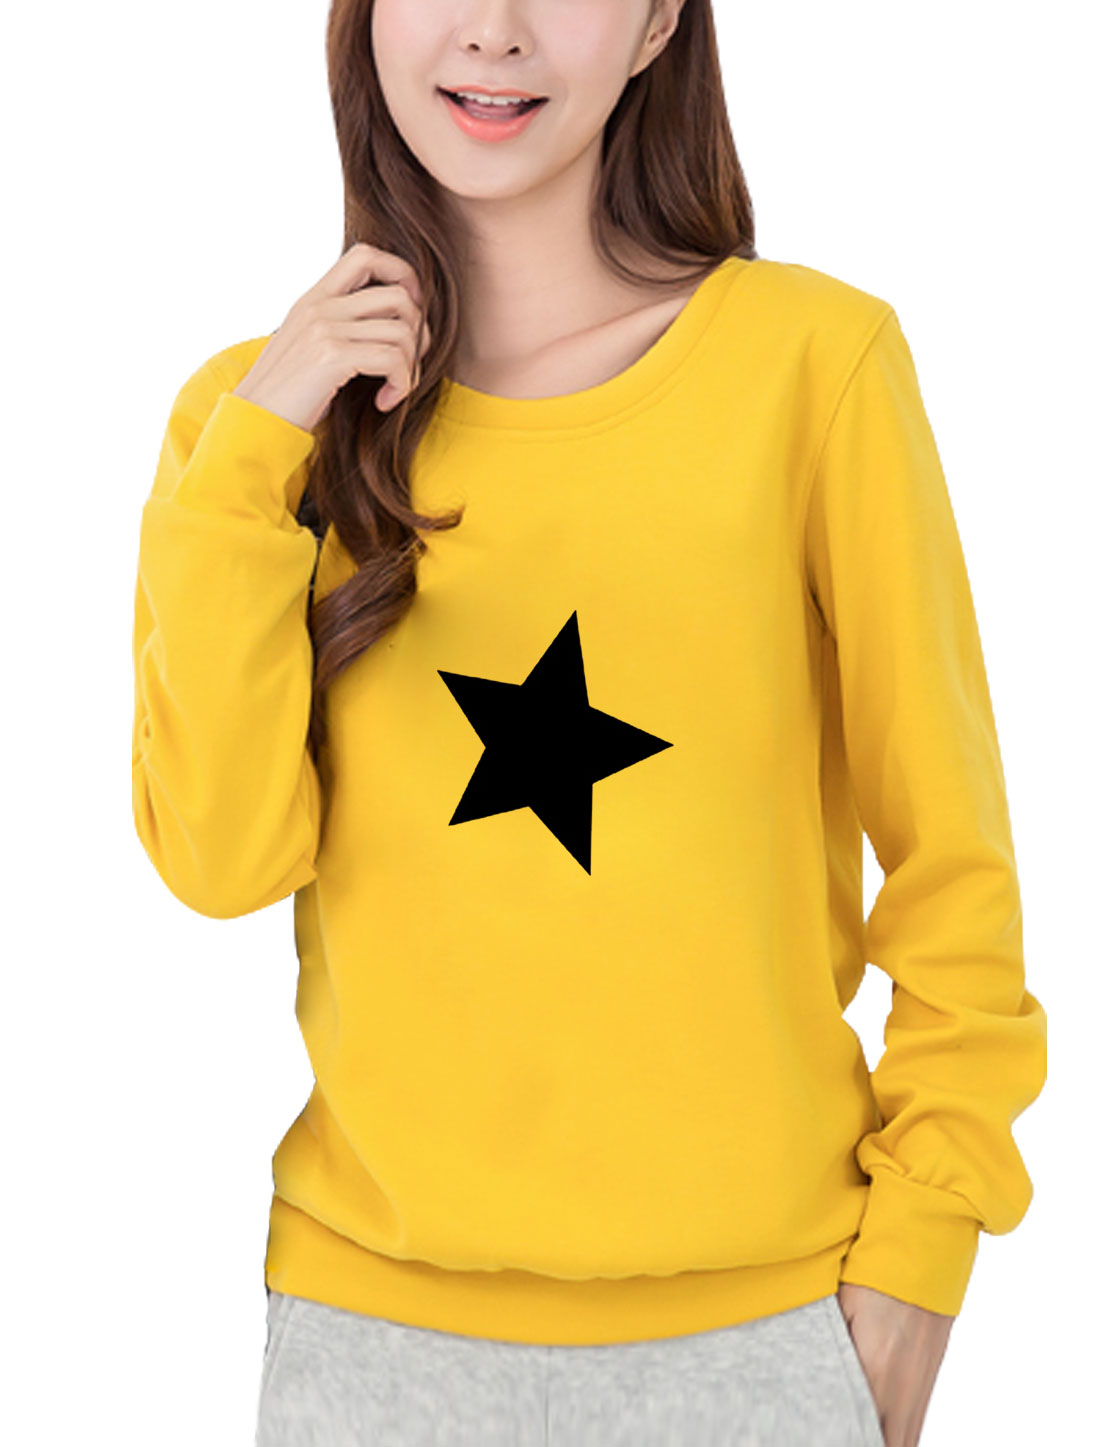 Women Round Neck Long Sleeves Stars Print Sweatshirt Yellow S